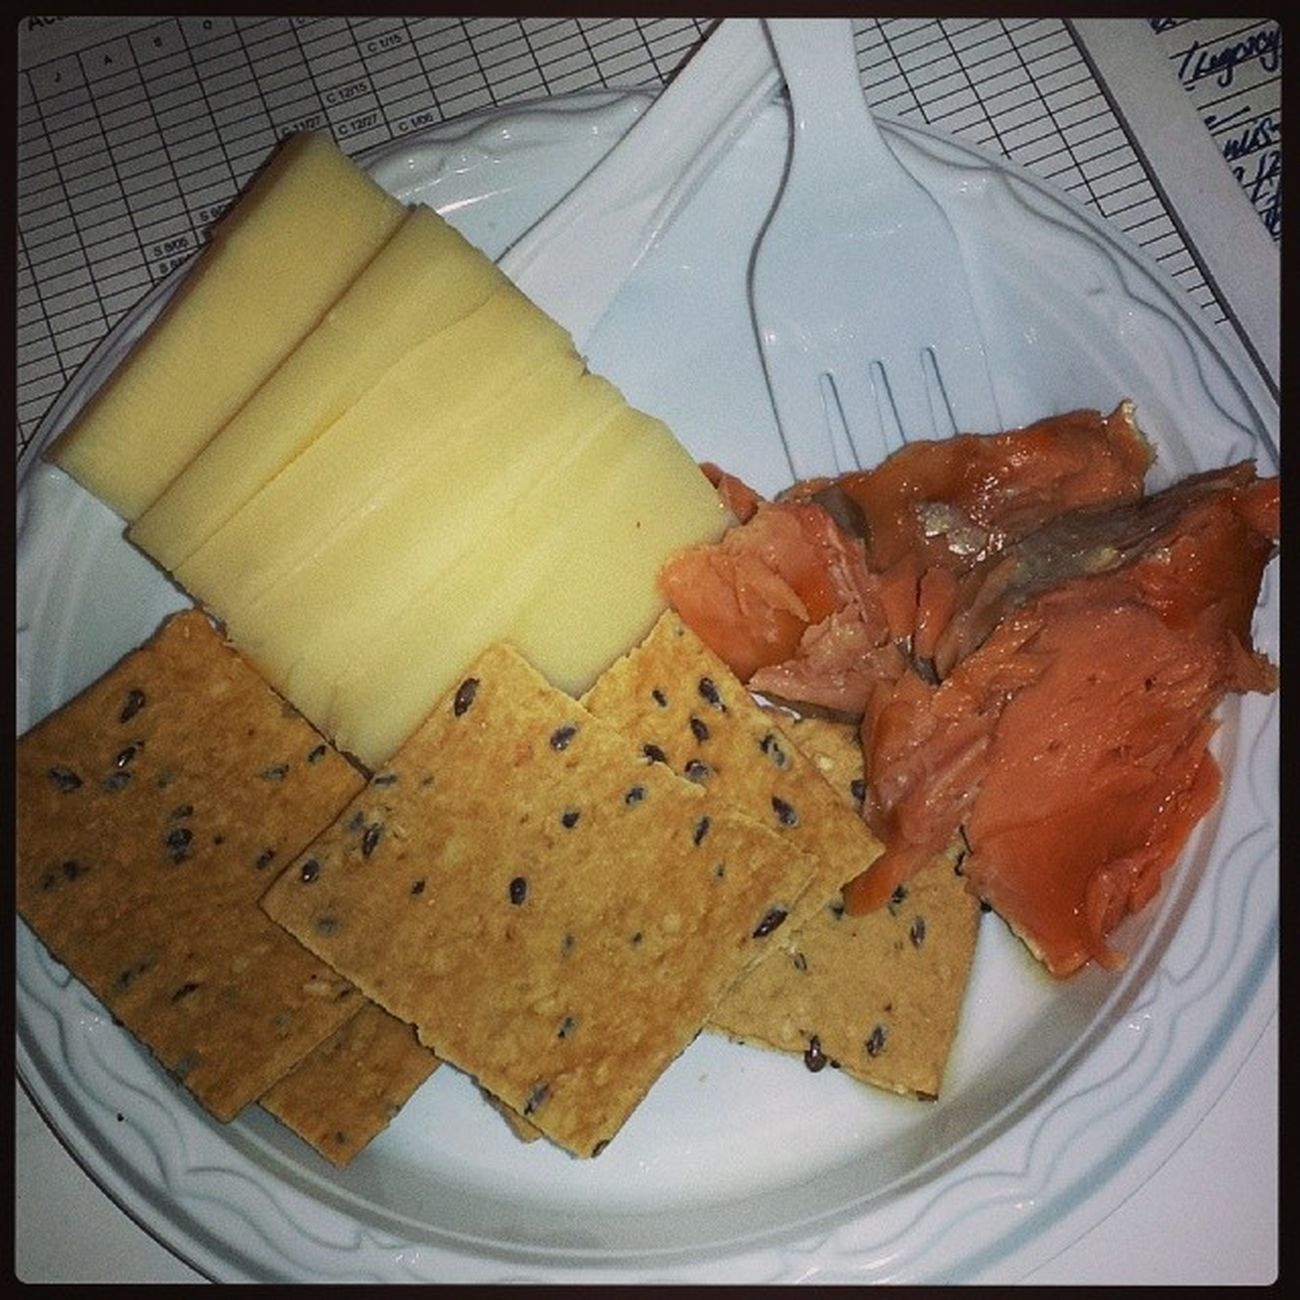 Protein packed breakfast!!! Smokedsalmon Omega3 Fattyacids Wheatcrackers sharpcheddarcheese vermontstyle smallportions frequentmeals lowcalorie lowfat proteinpacked ilovefish yamminfishdatahackeebusiness VybzKartel Business dancehall 2013 HappyHumpDay lash